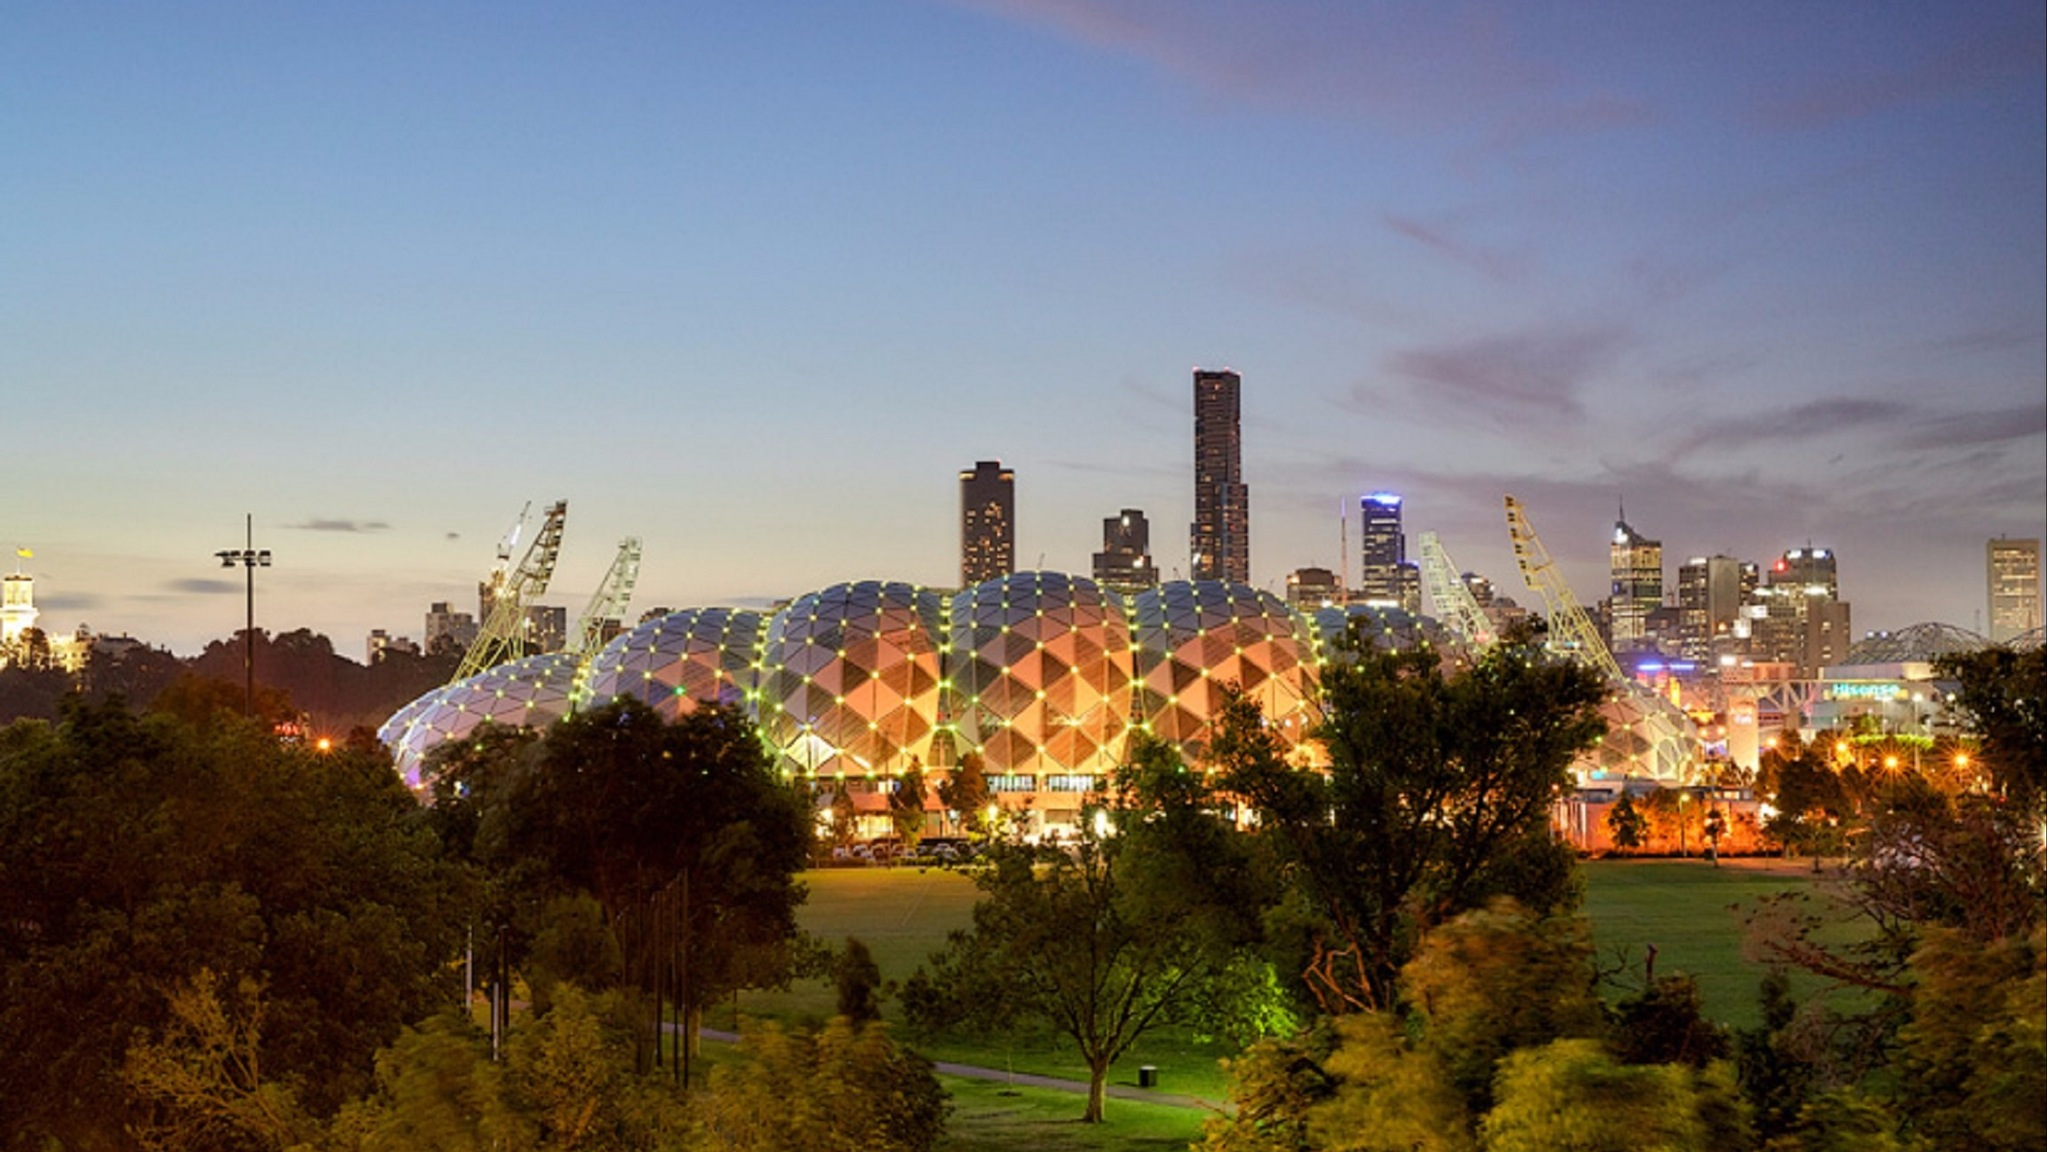 Take in the evening view of Melbourne